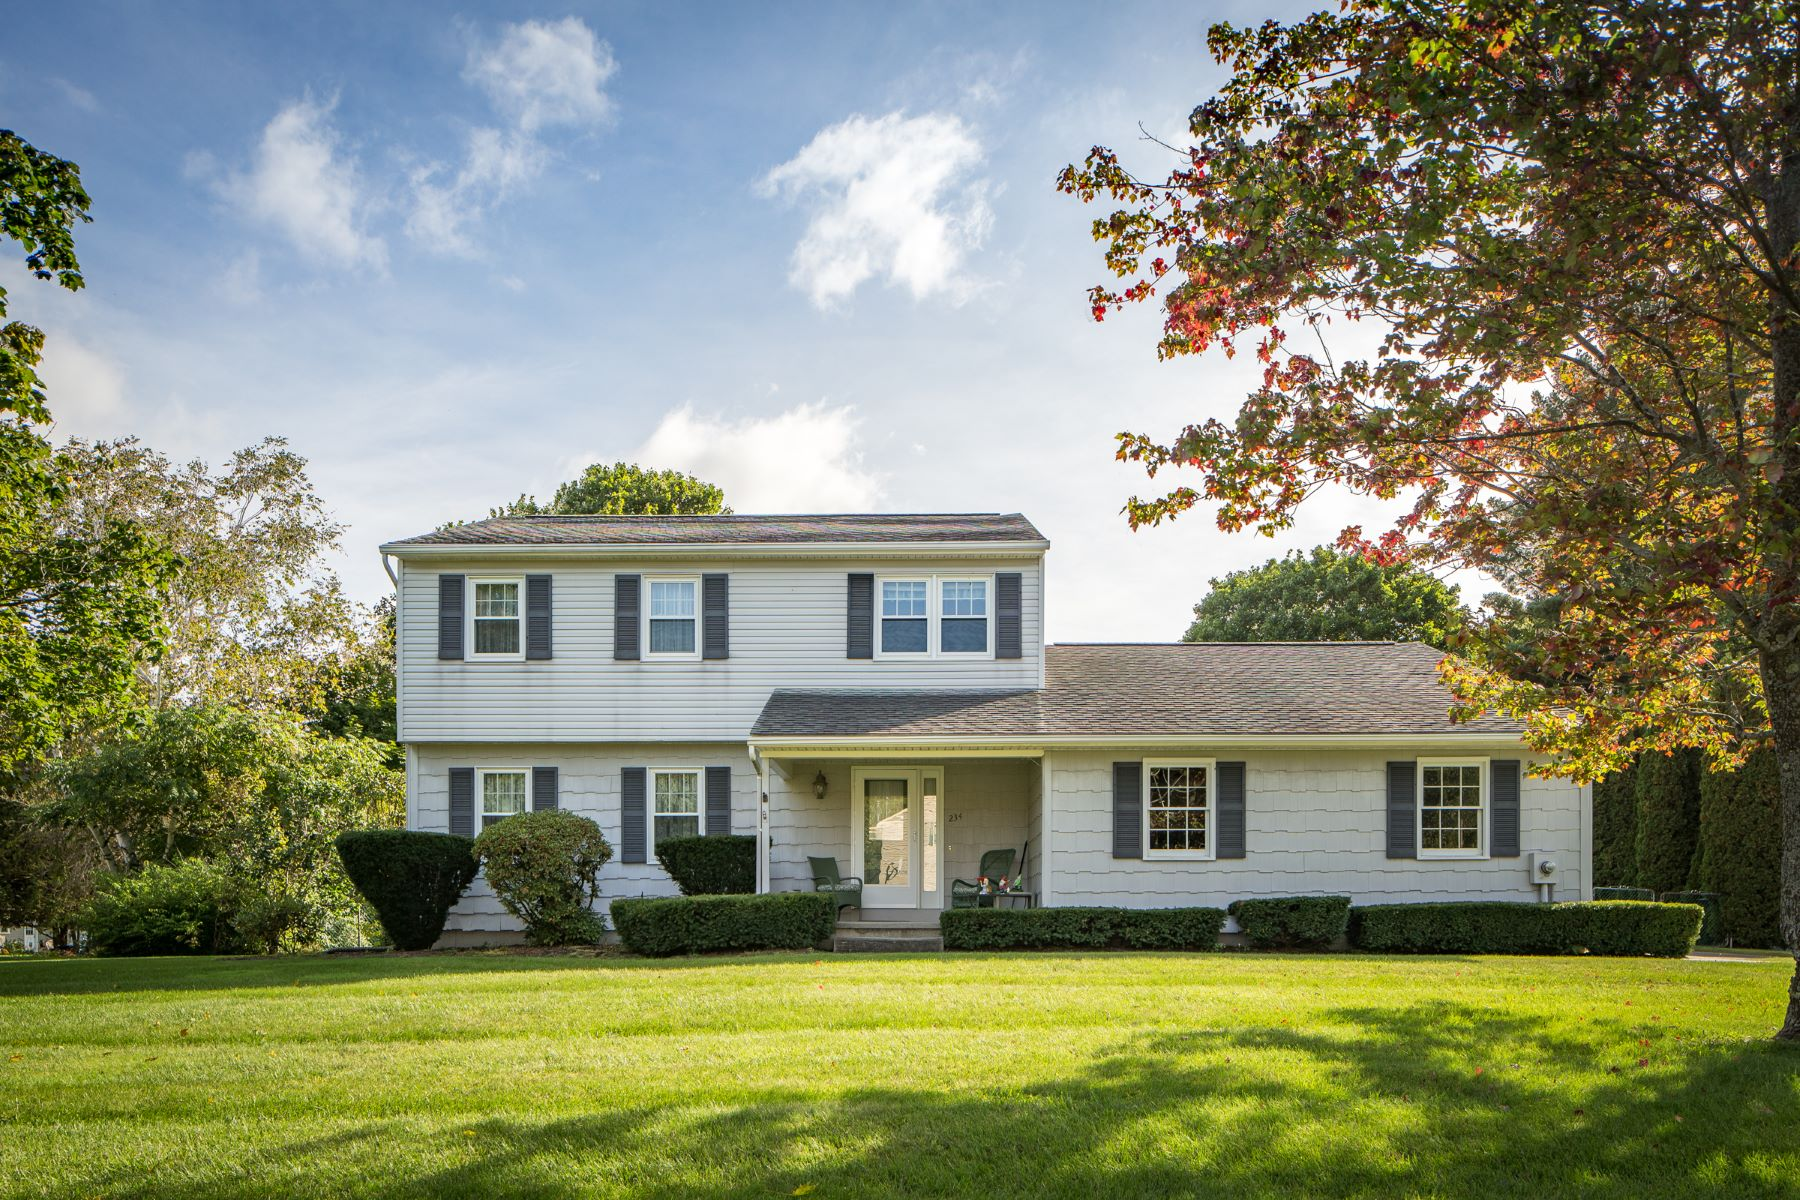 Single Family Home for Sale at Classic Four Bedroom Colonial In One Of Dalton's Finest Neighborhoods 234 Raymond Dr Dalton, Massachusetts 01226 United States